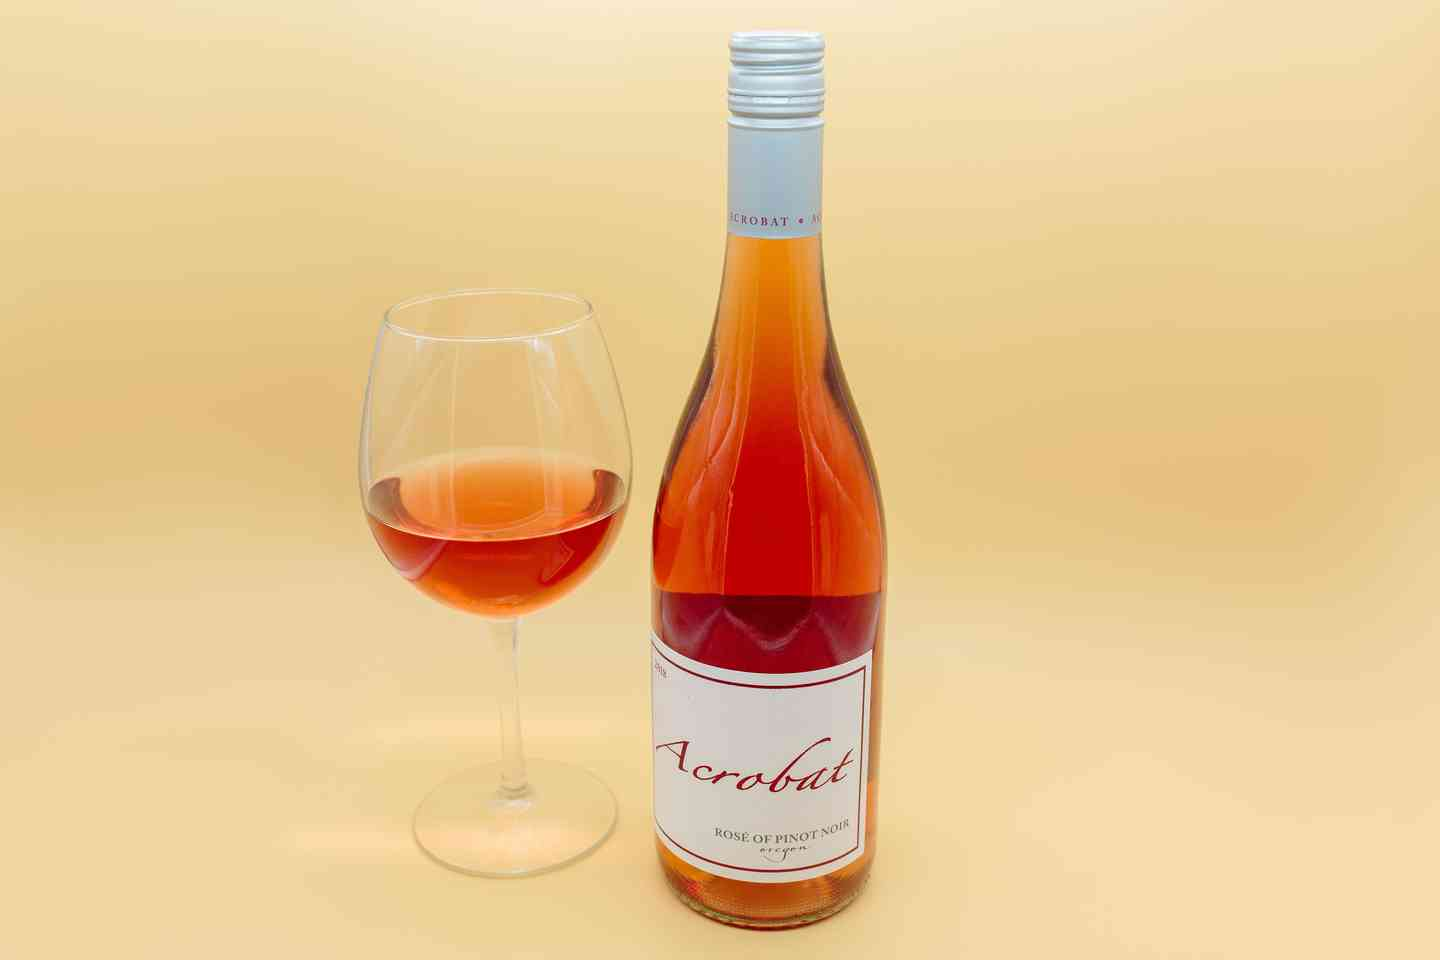 Acrobat Rose of Pinot Noi